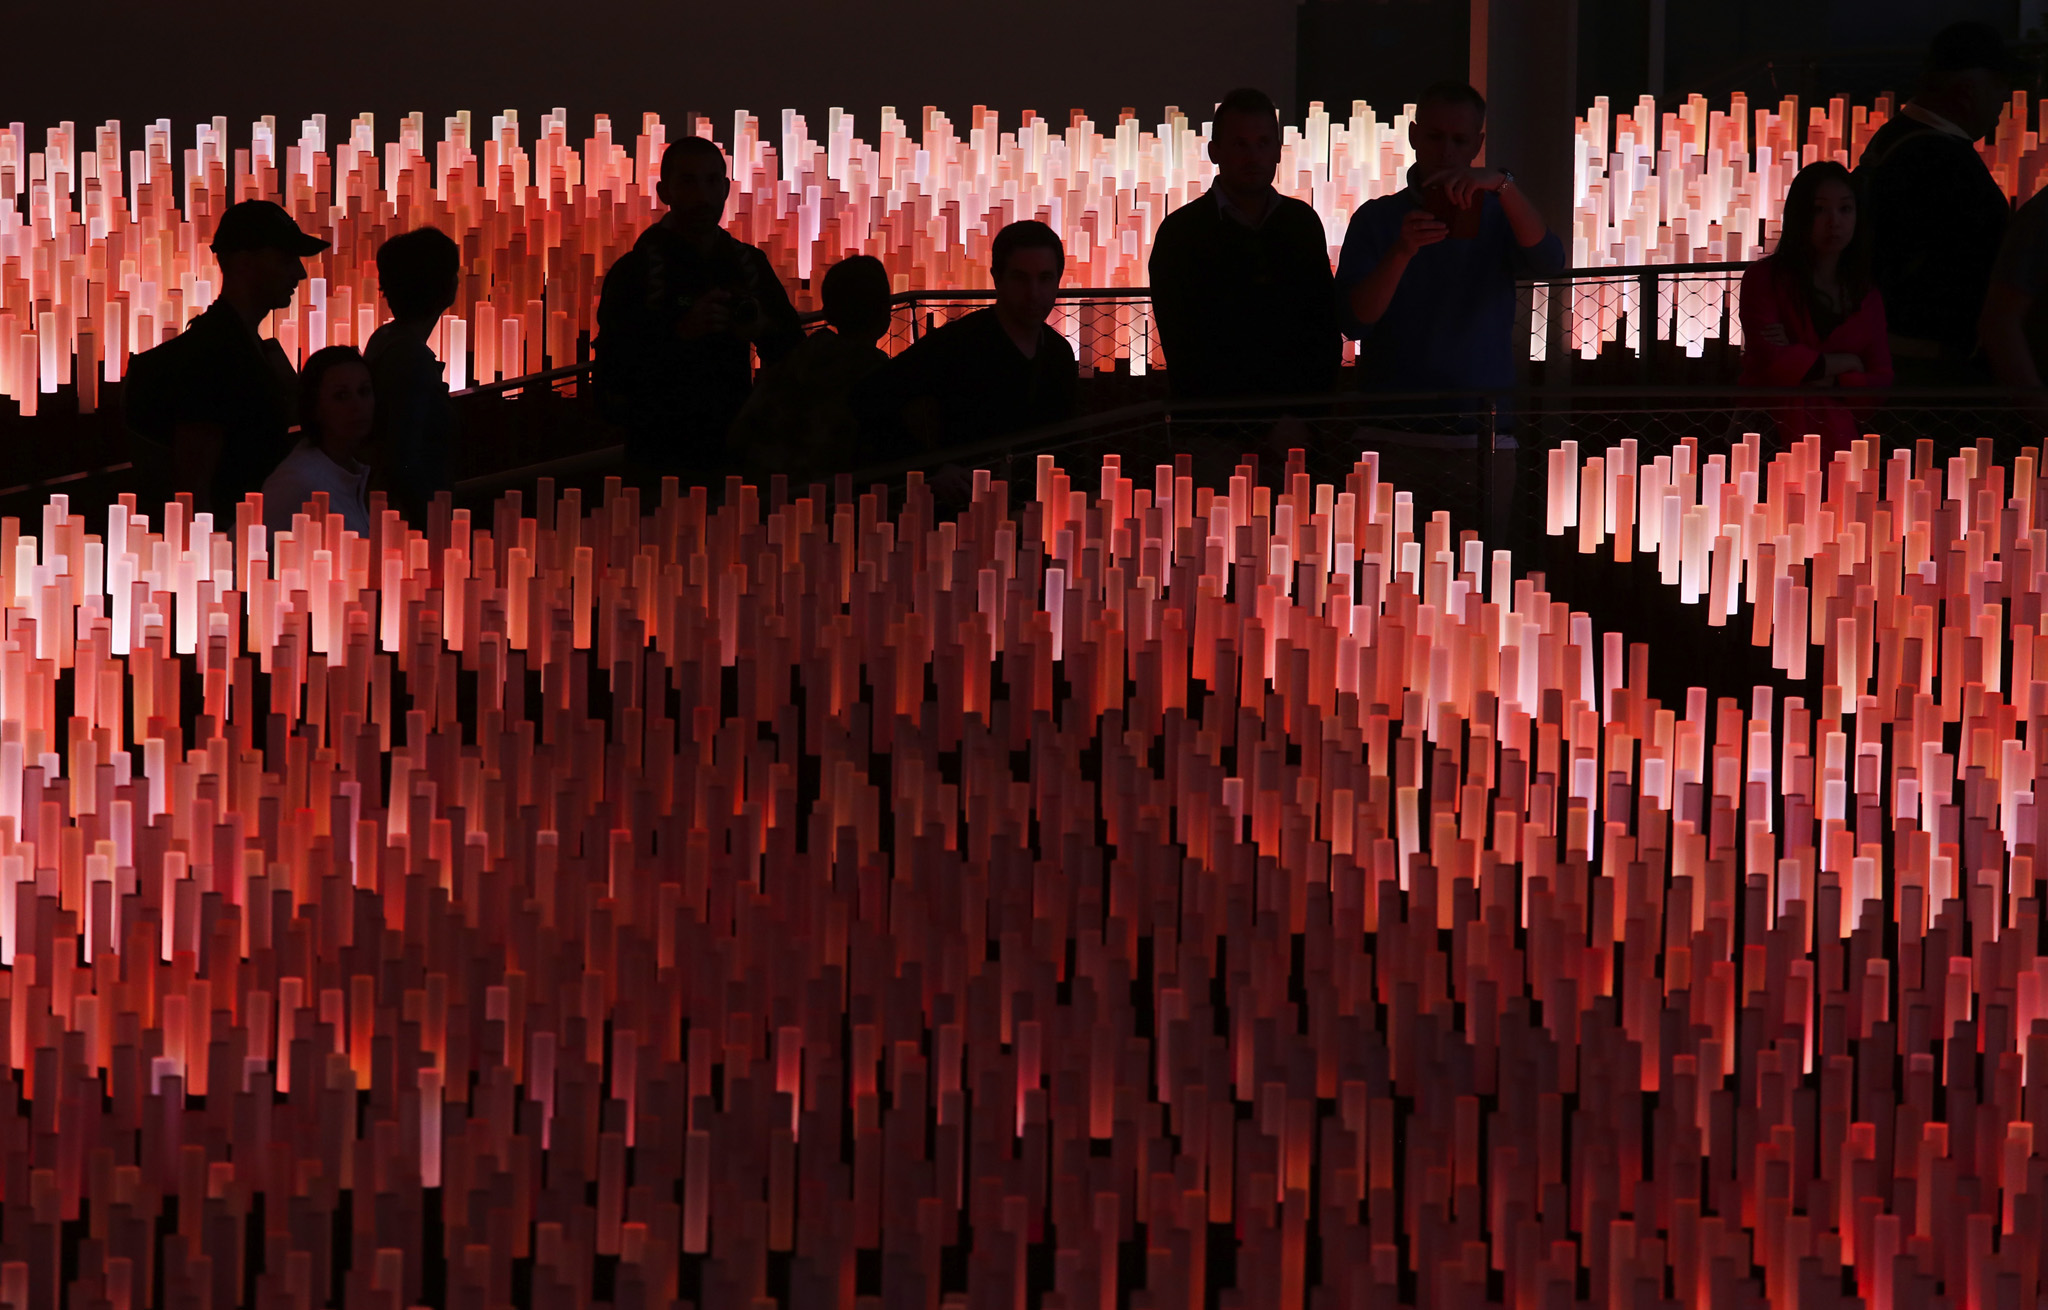 Visitors view a giant light installation inside the China pavilion at the Expo 2015 exhibition in Milan, Italy.